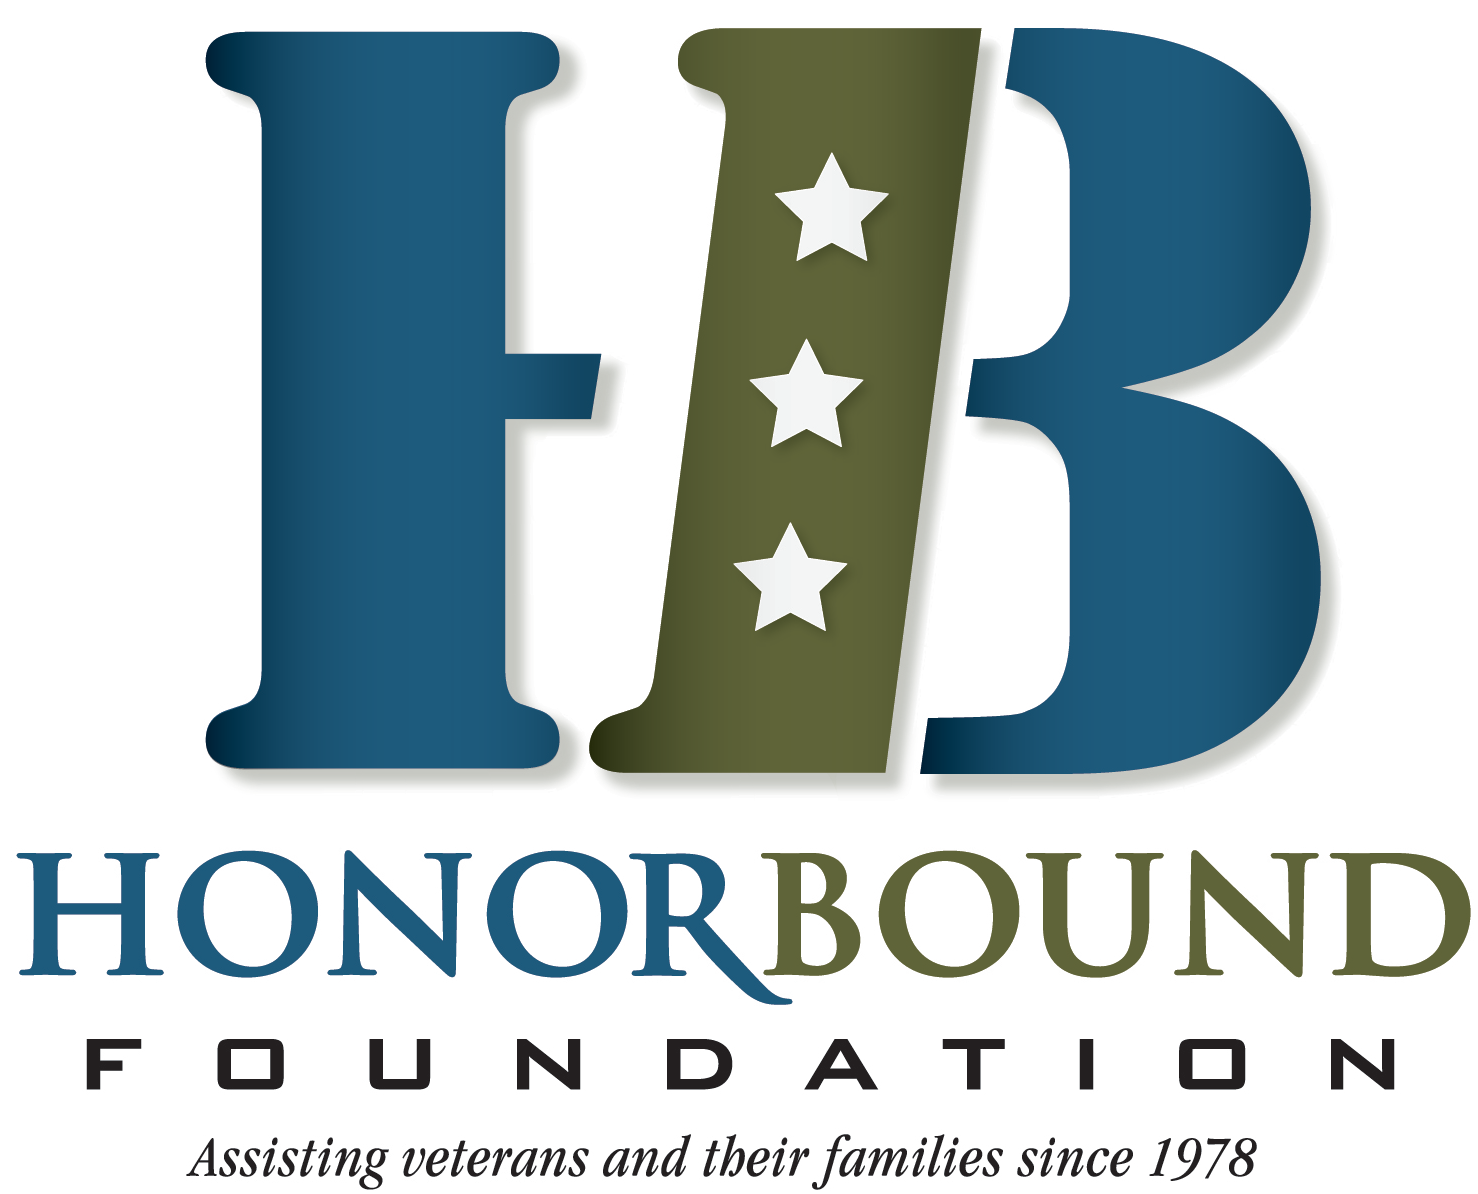 South Carolina Car Donations - HonorBound Foundation - DonatecarUSA.com